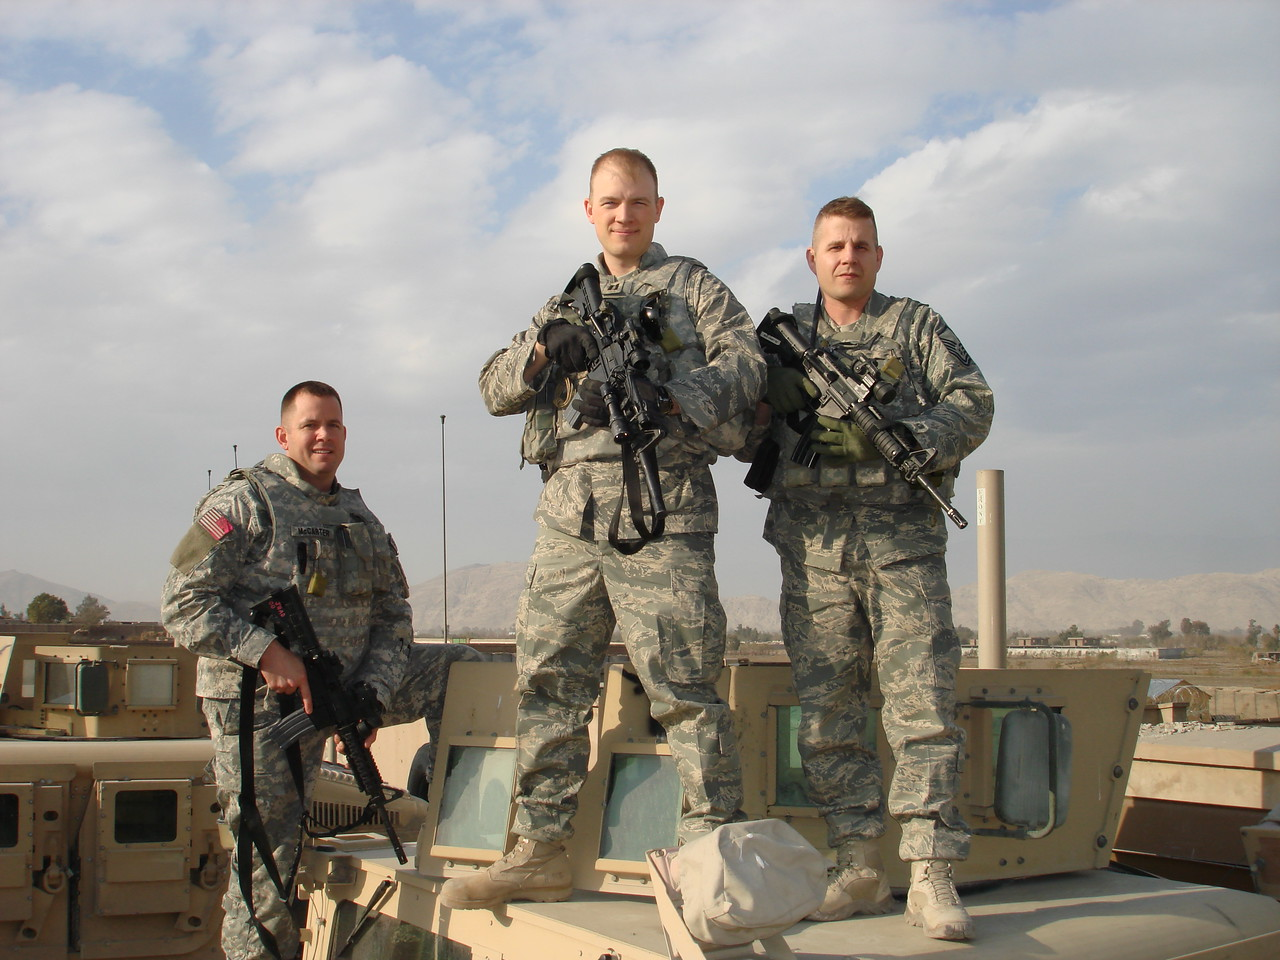 Provicial Reconstruction Team, Nangarhar, Jalalabad, Afghanistan, Video, PRT, JBAD, FOB, FOB FinleyShields, Finley Shields, FOB, PRT 7, Civil Affairs, 158th, sky soldier, lucky 7, Military, Air Force, Army